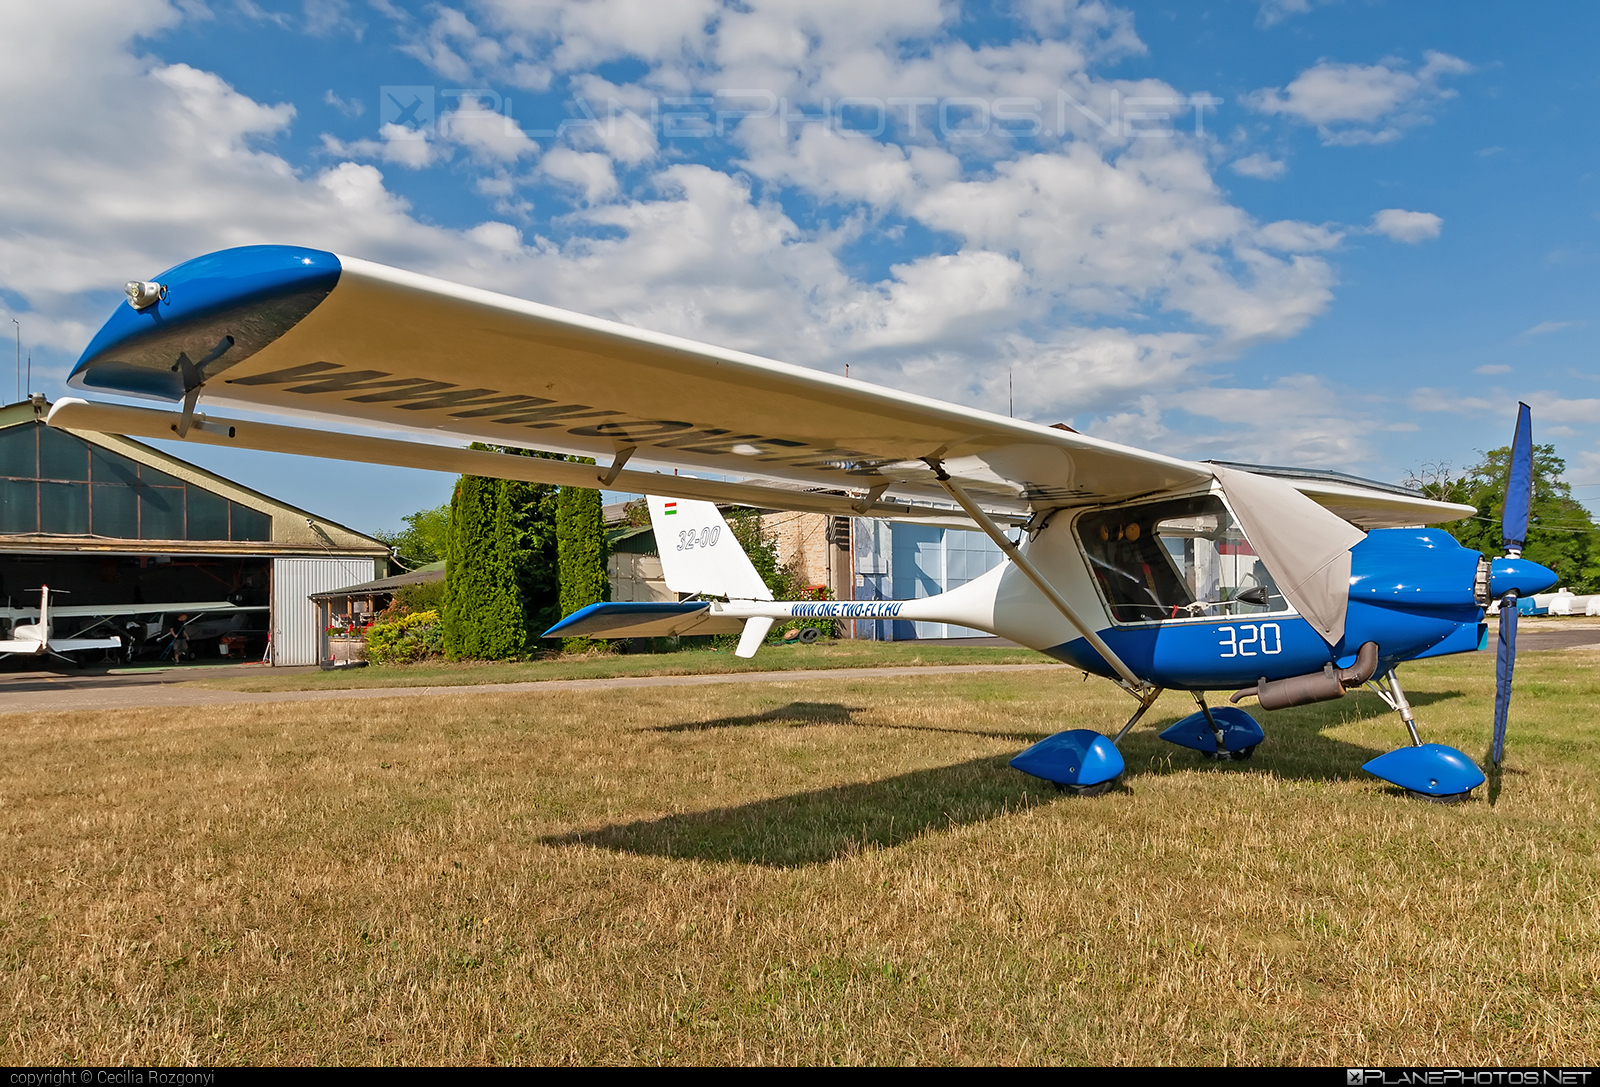 Fly Synthesis Storch CL - 32-00 operated by Private operator #flysynthesis #flysynthesisstorch #flysynthesisstorchcl